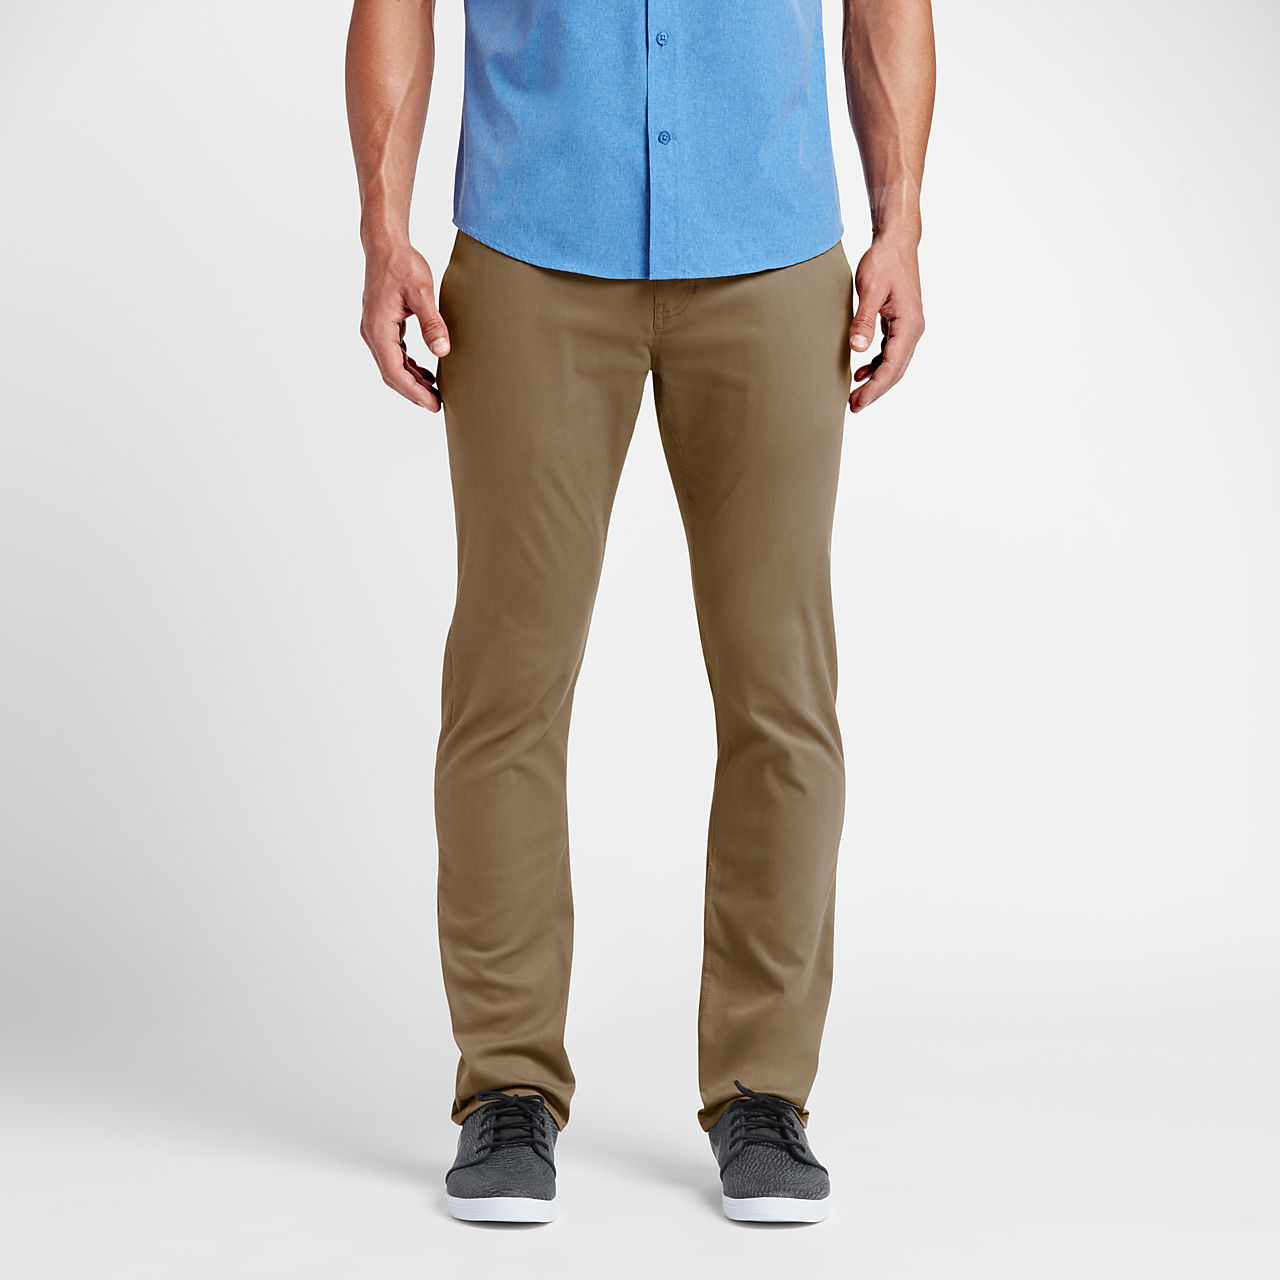 Hurley Dri-FIT Worker Men's 32